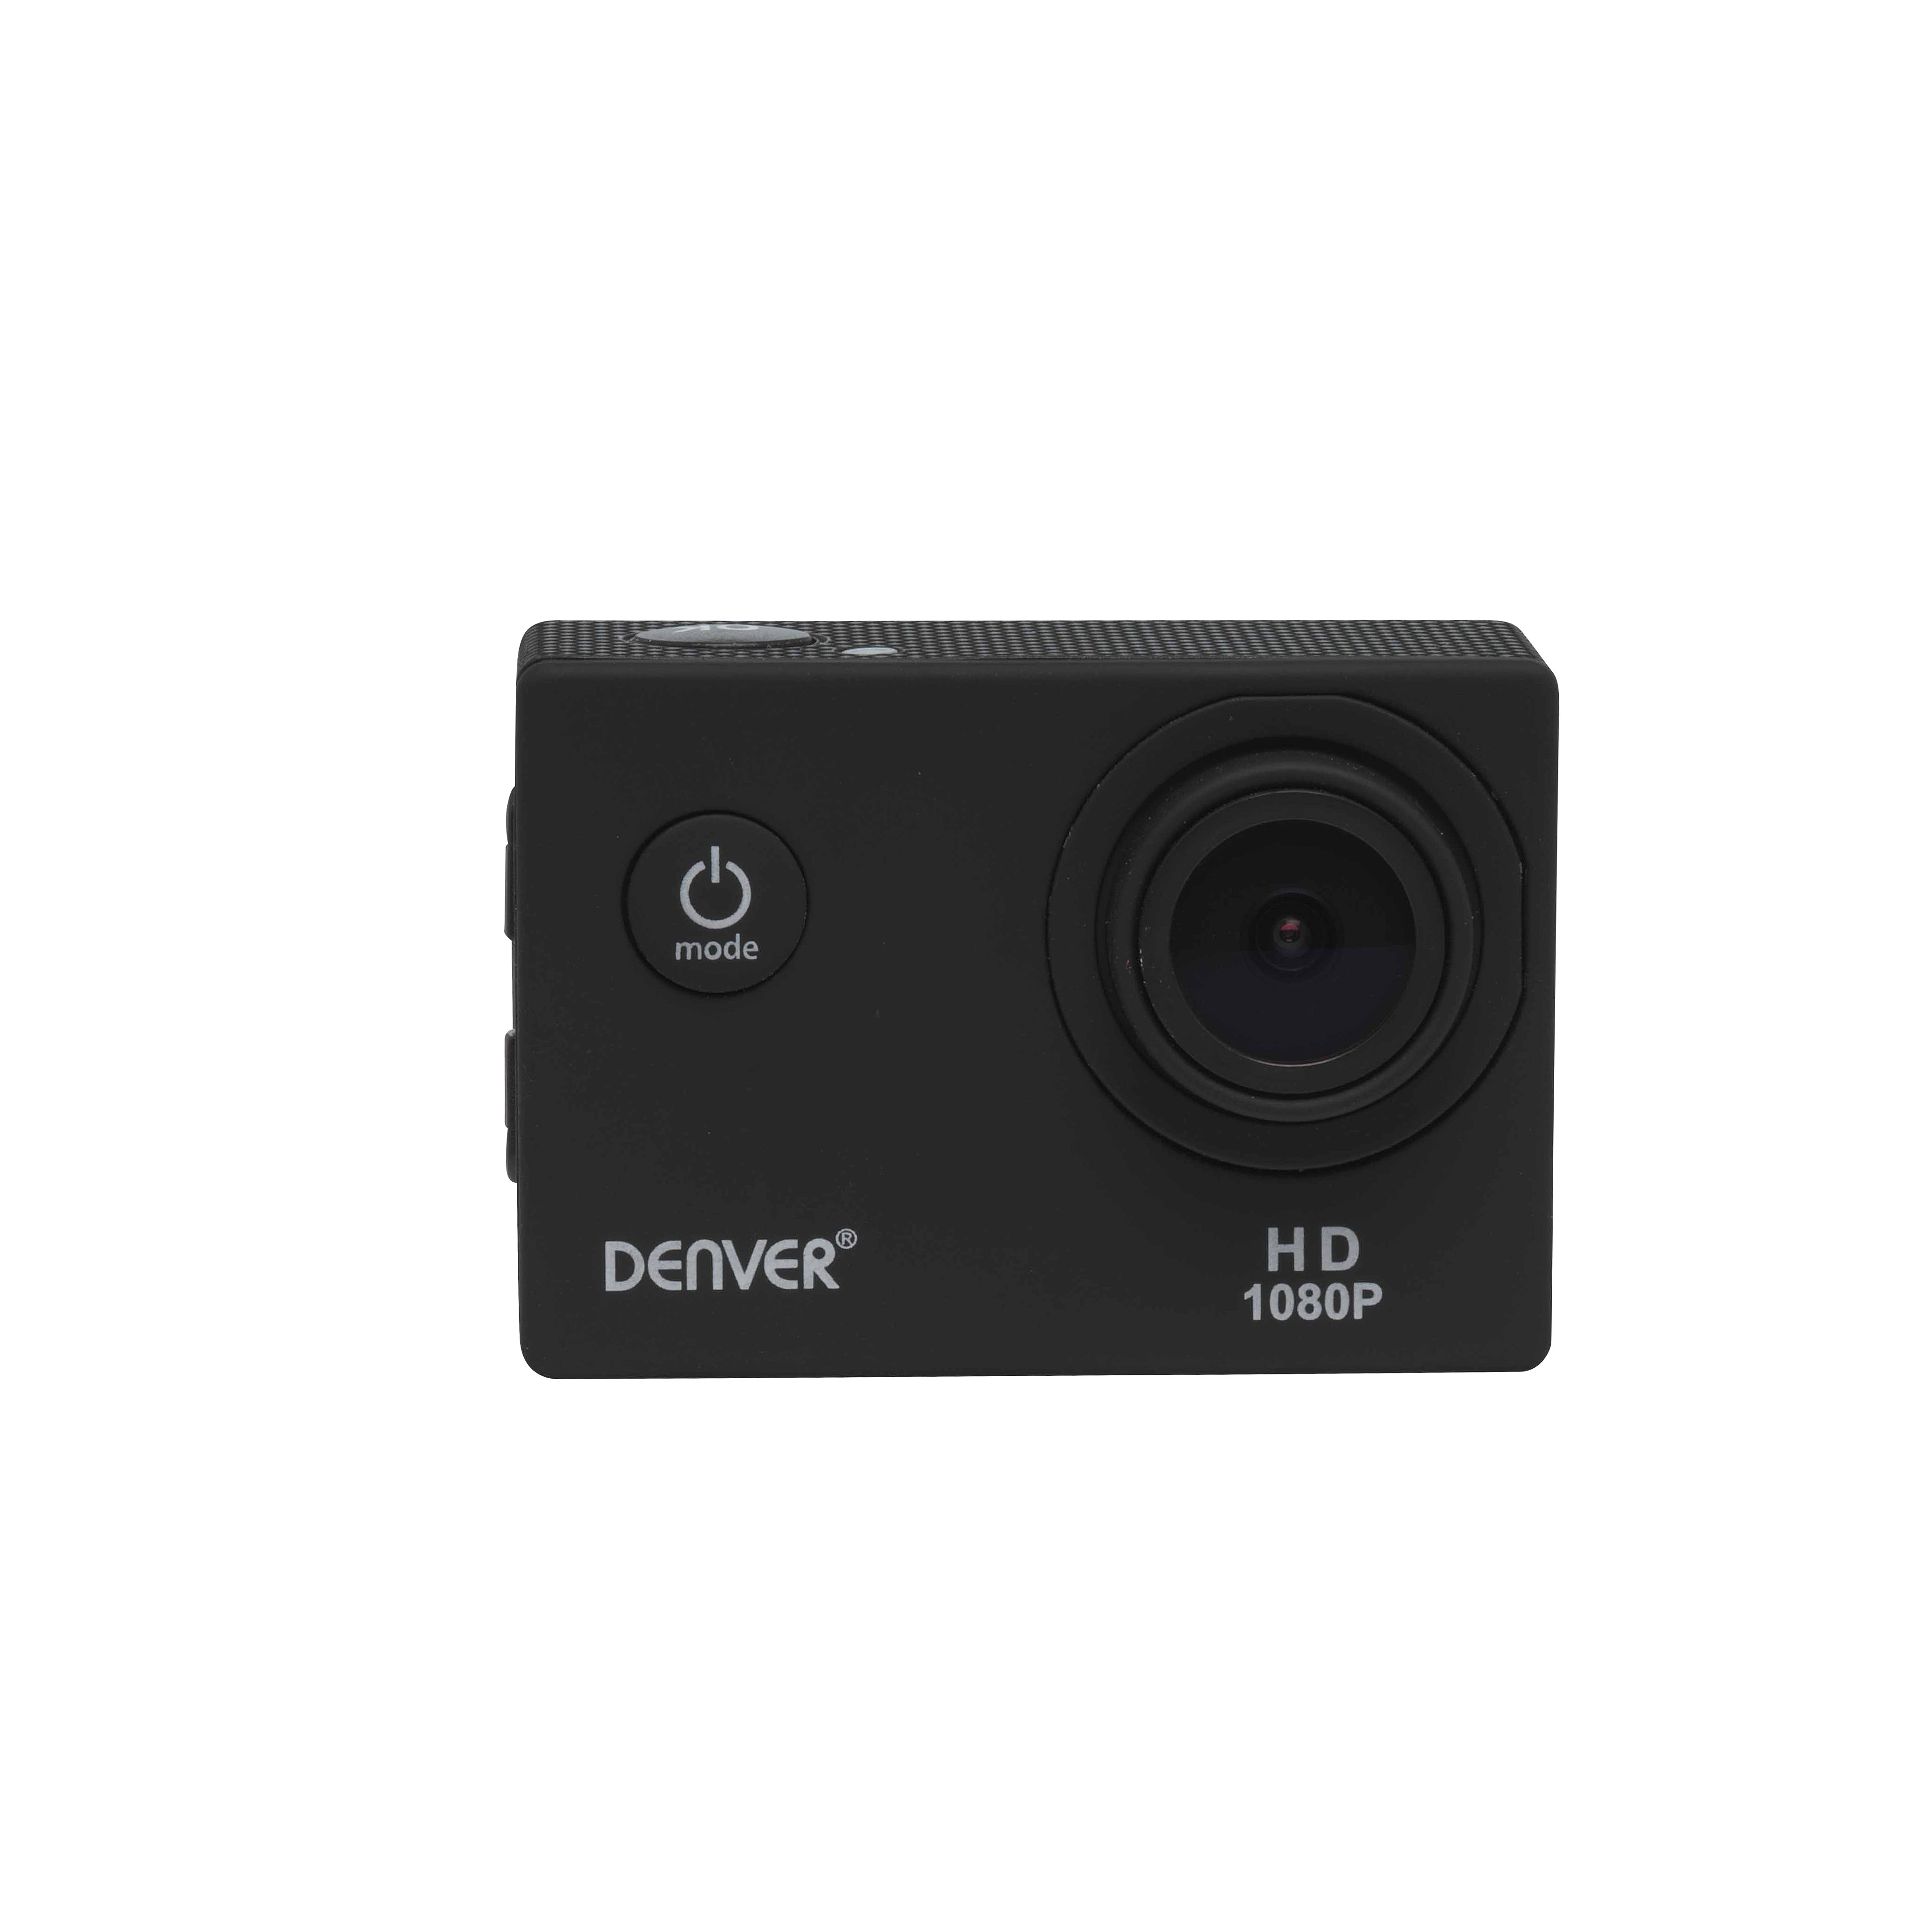 CAMARA VIDEO  DEPORTIVA DENVER ACT-1015 MSD 5MPX SUMERGIBLE 30M